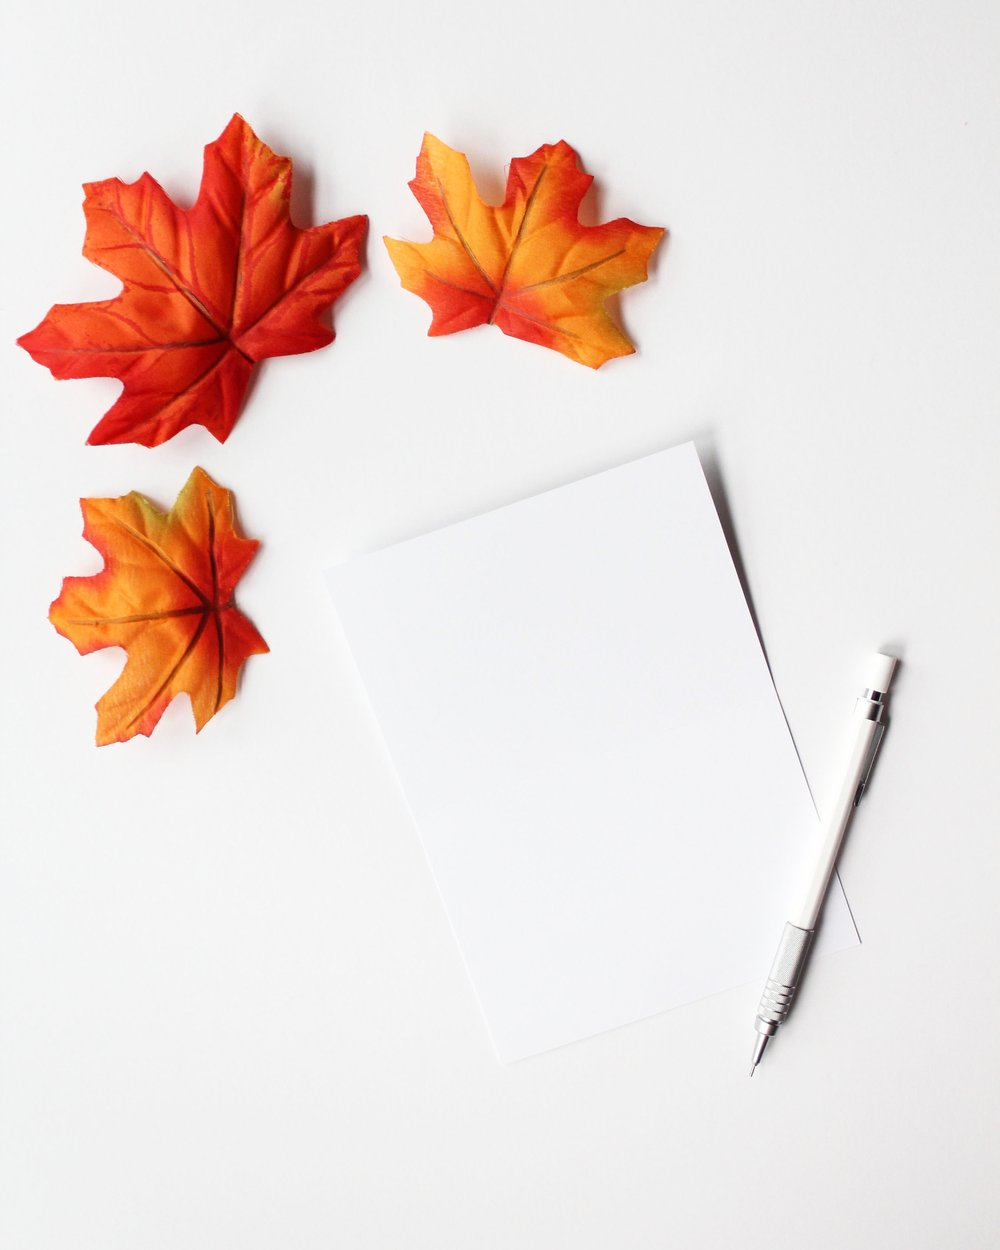 blank card w/ leaves and pencil